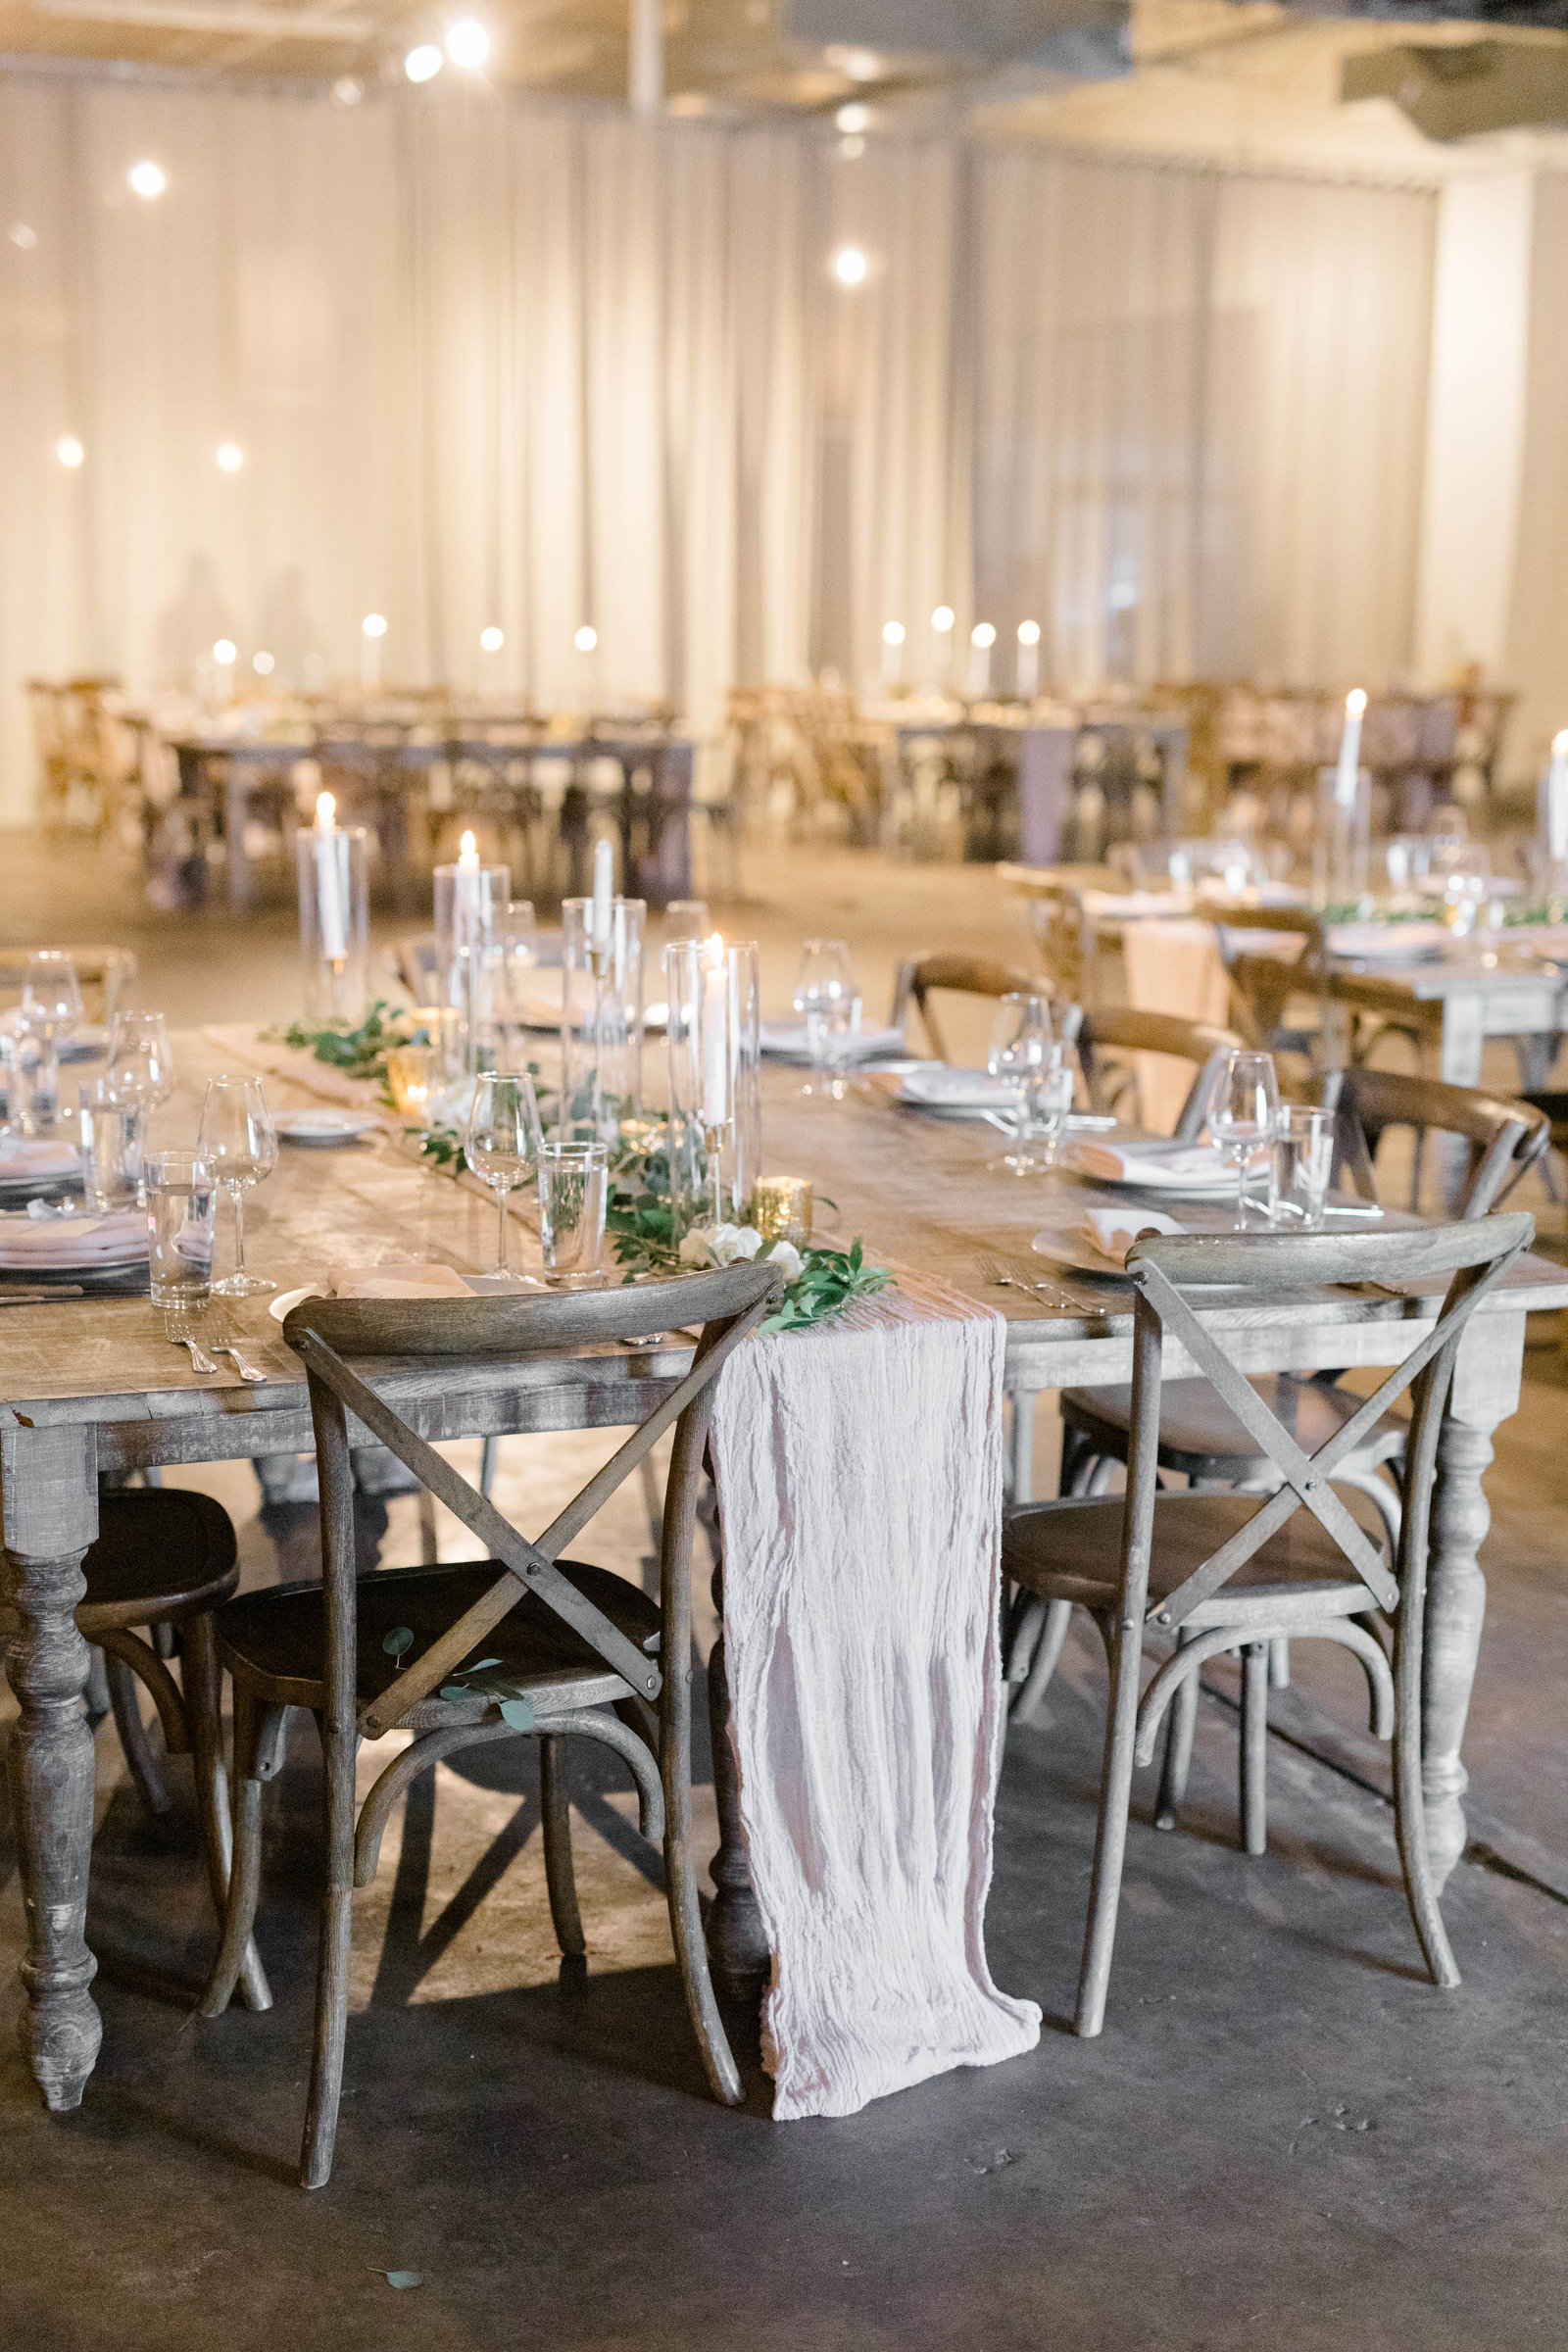 stave-room-wedding-atlanta-38